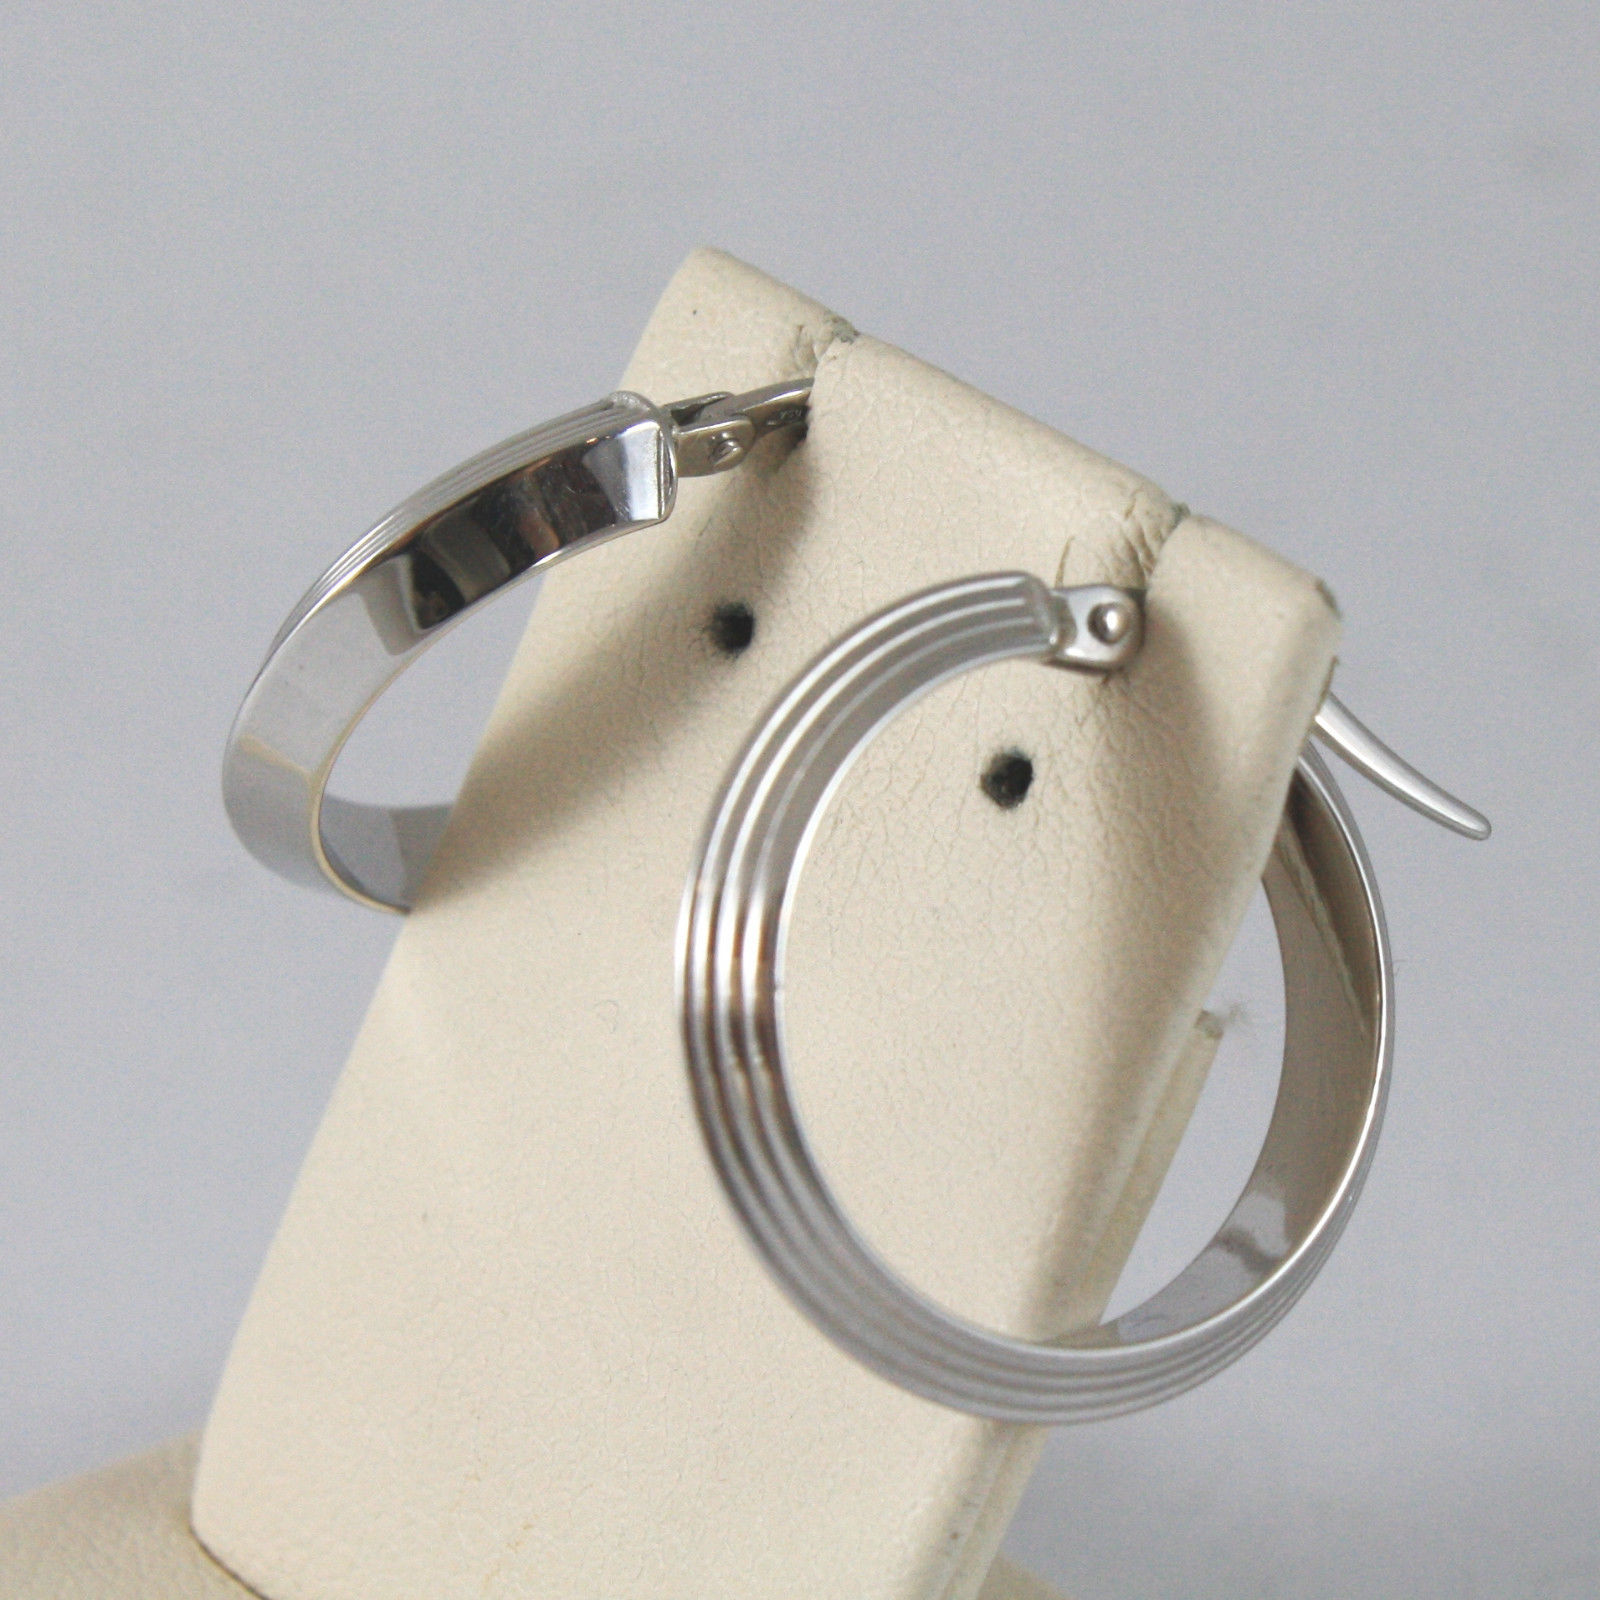 SOLID 18KT. WHITE GOLD CIRCLE EARRINGS, STRIPED AND SMOOTH, MADE IN ITALY.